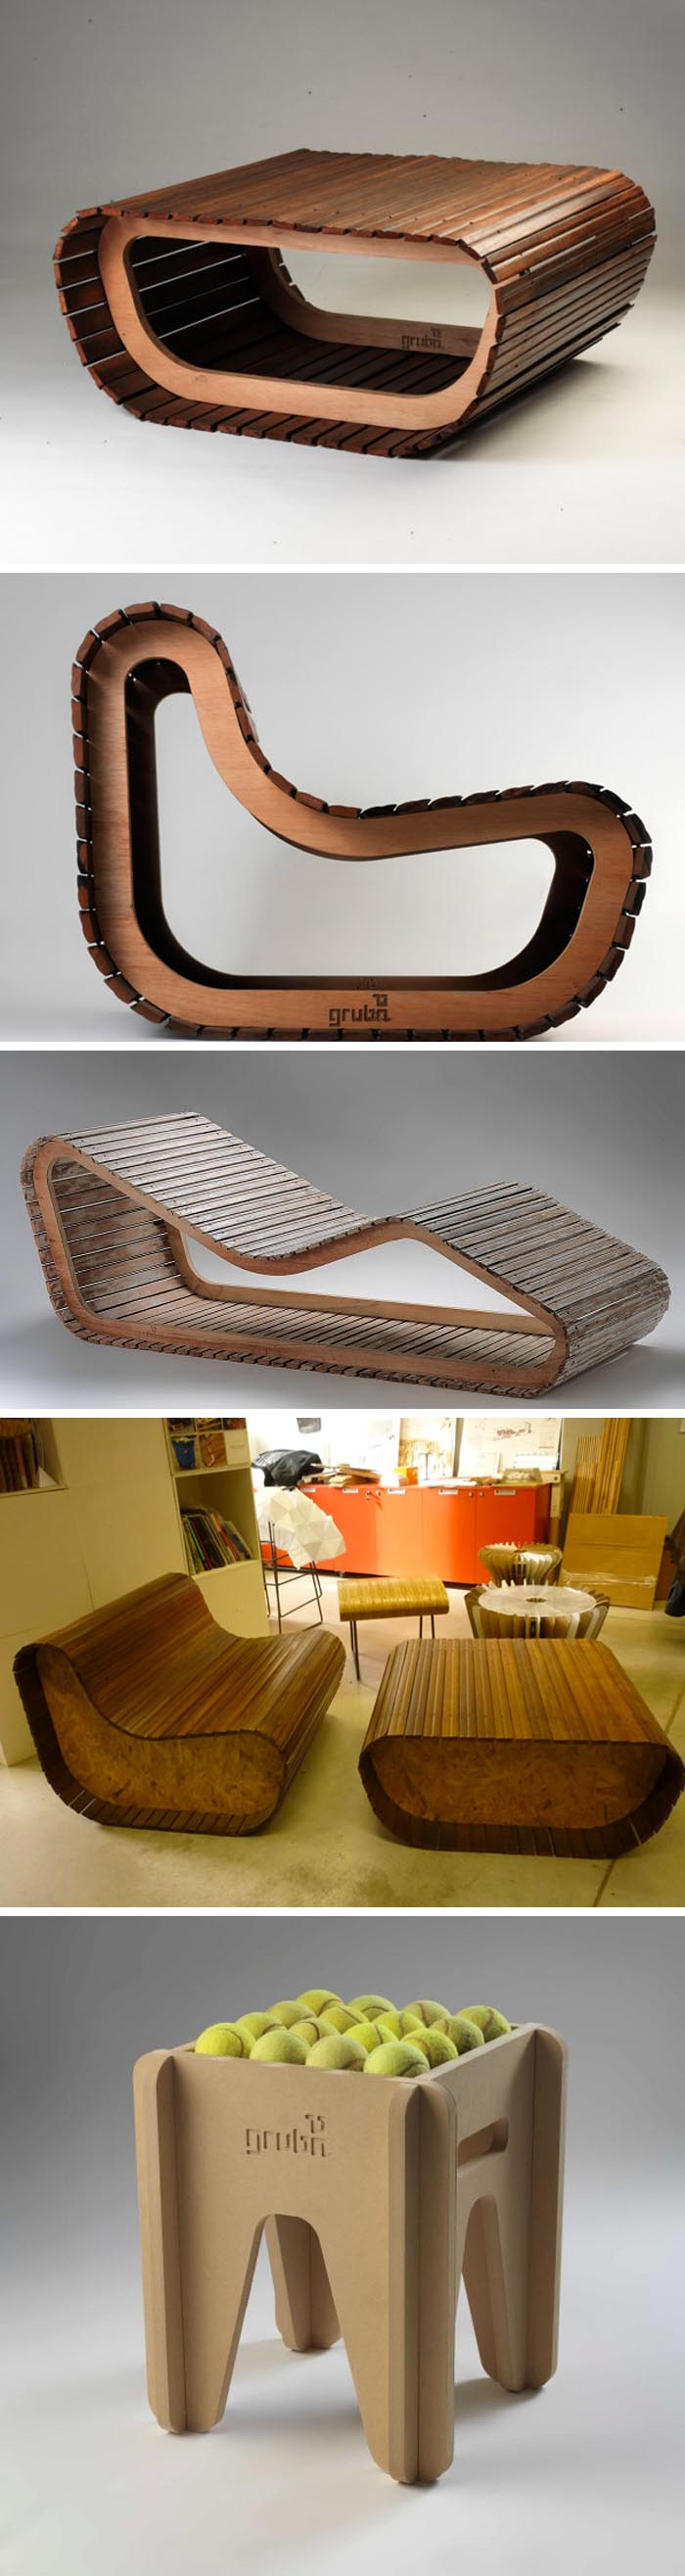 Gruba Sustainable Furniture Design Collabcubed